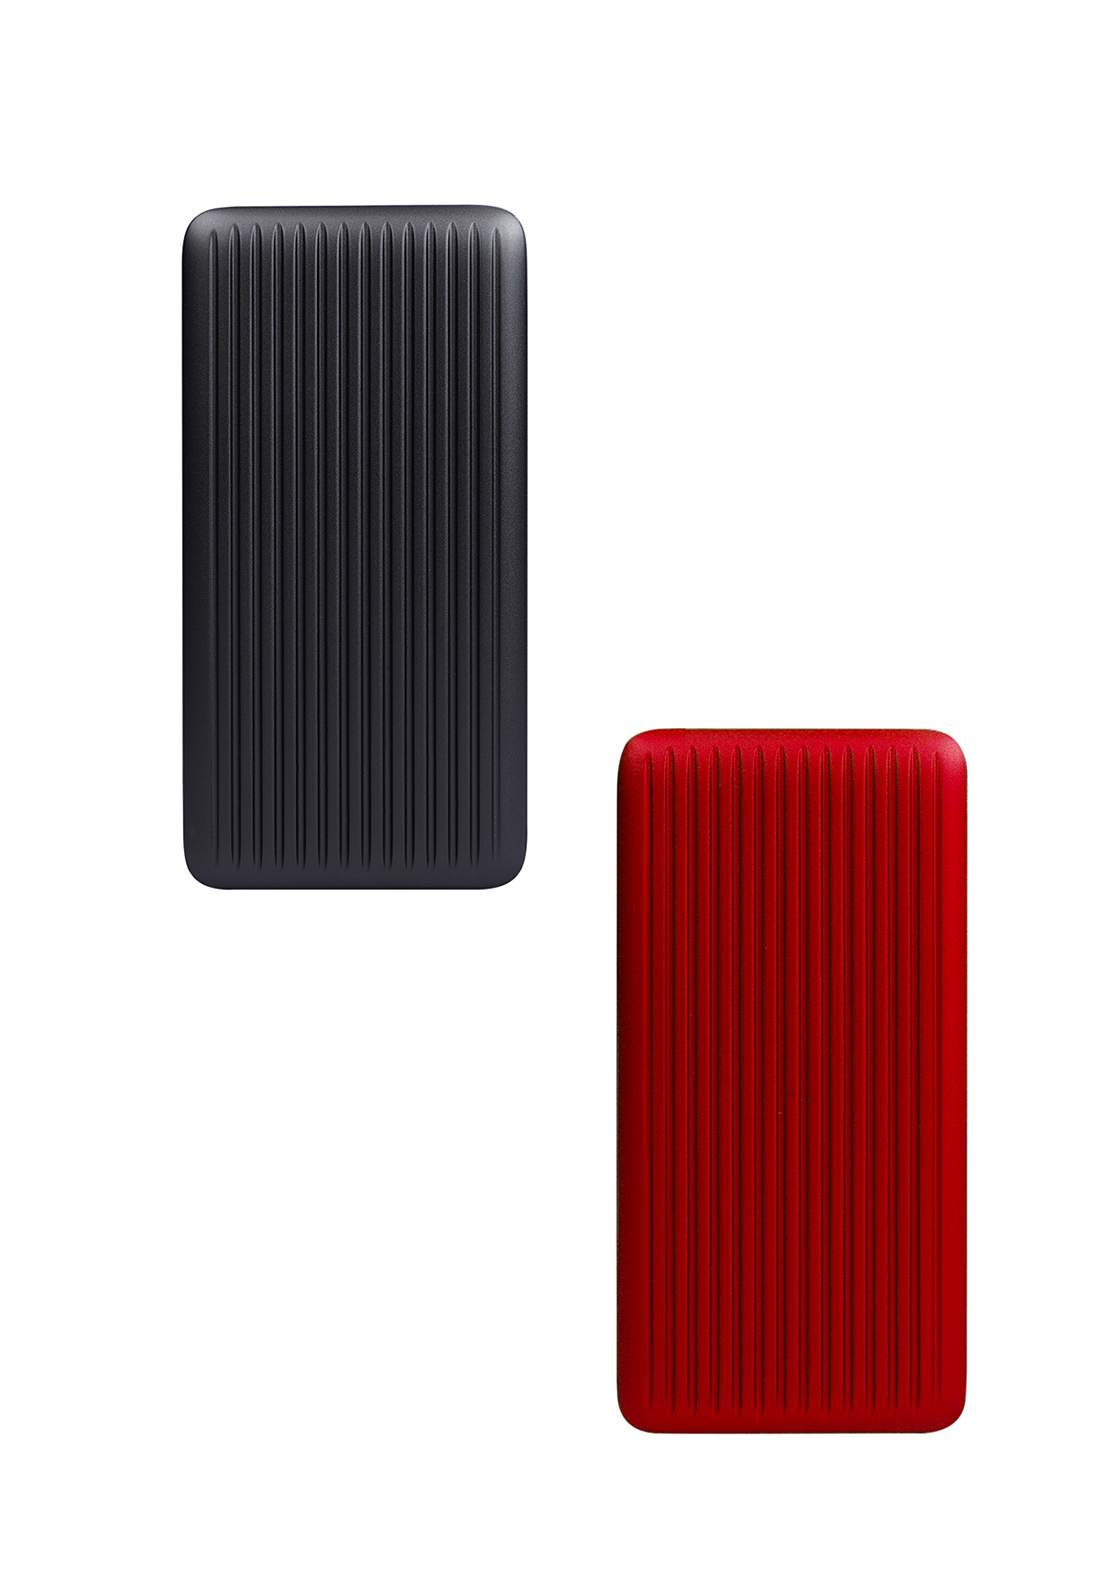 Silicon Power QP66 10,000mAh 18W Power Delivery Power Bank